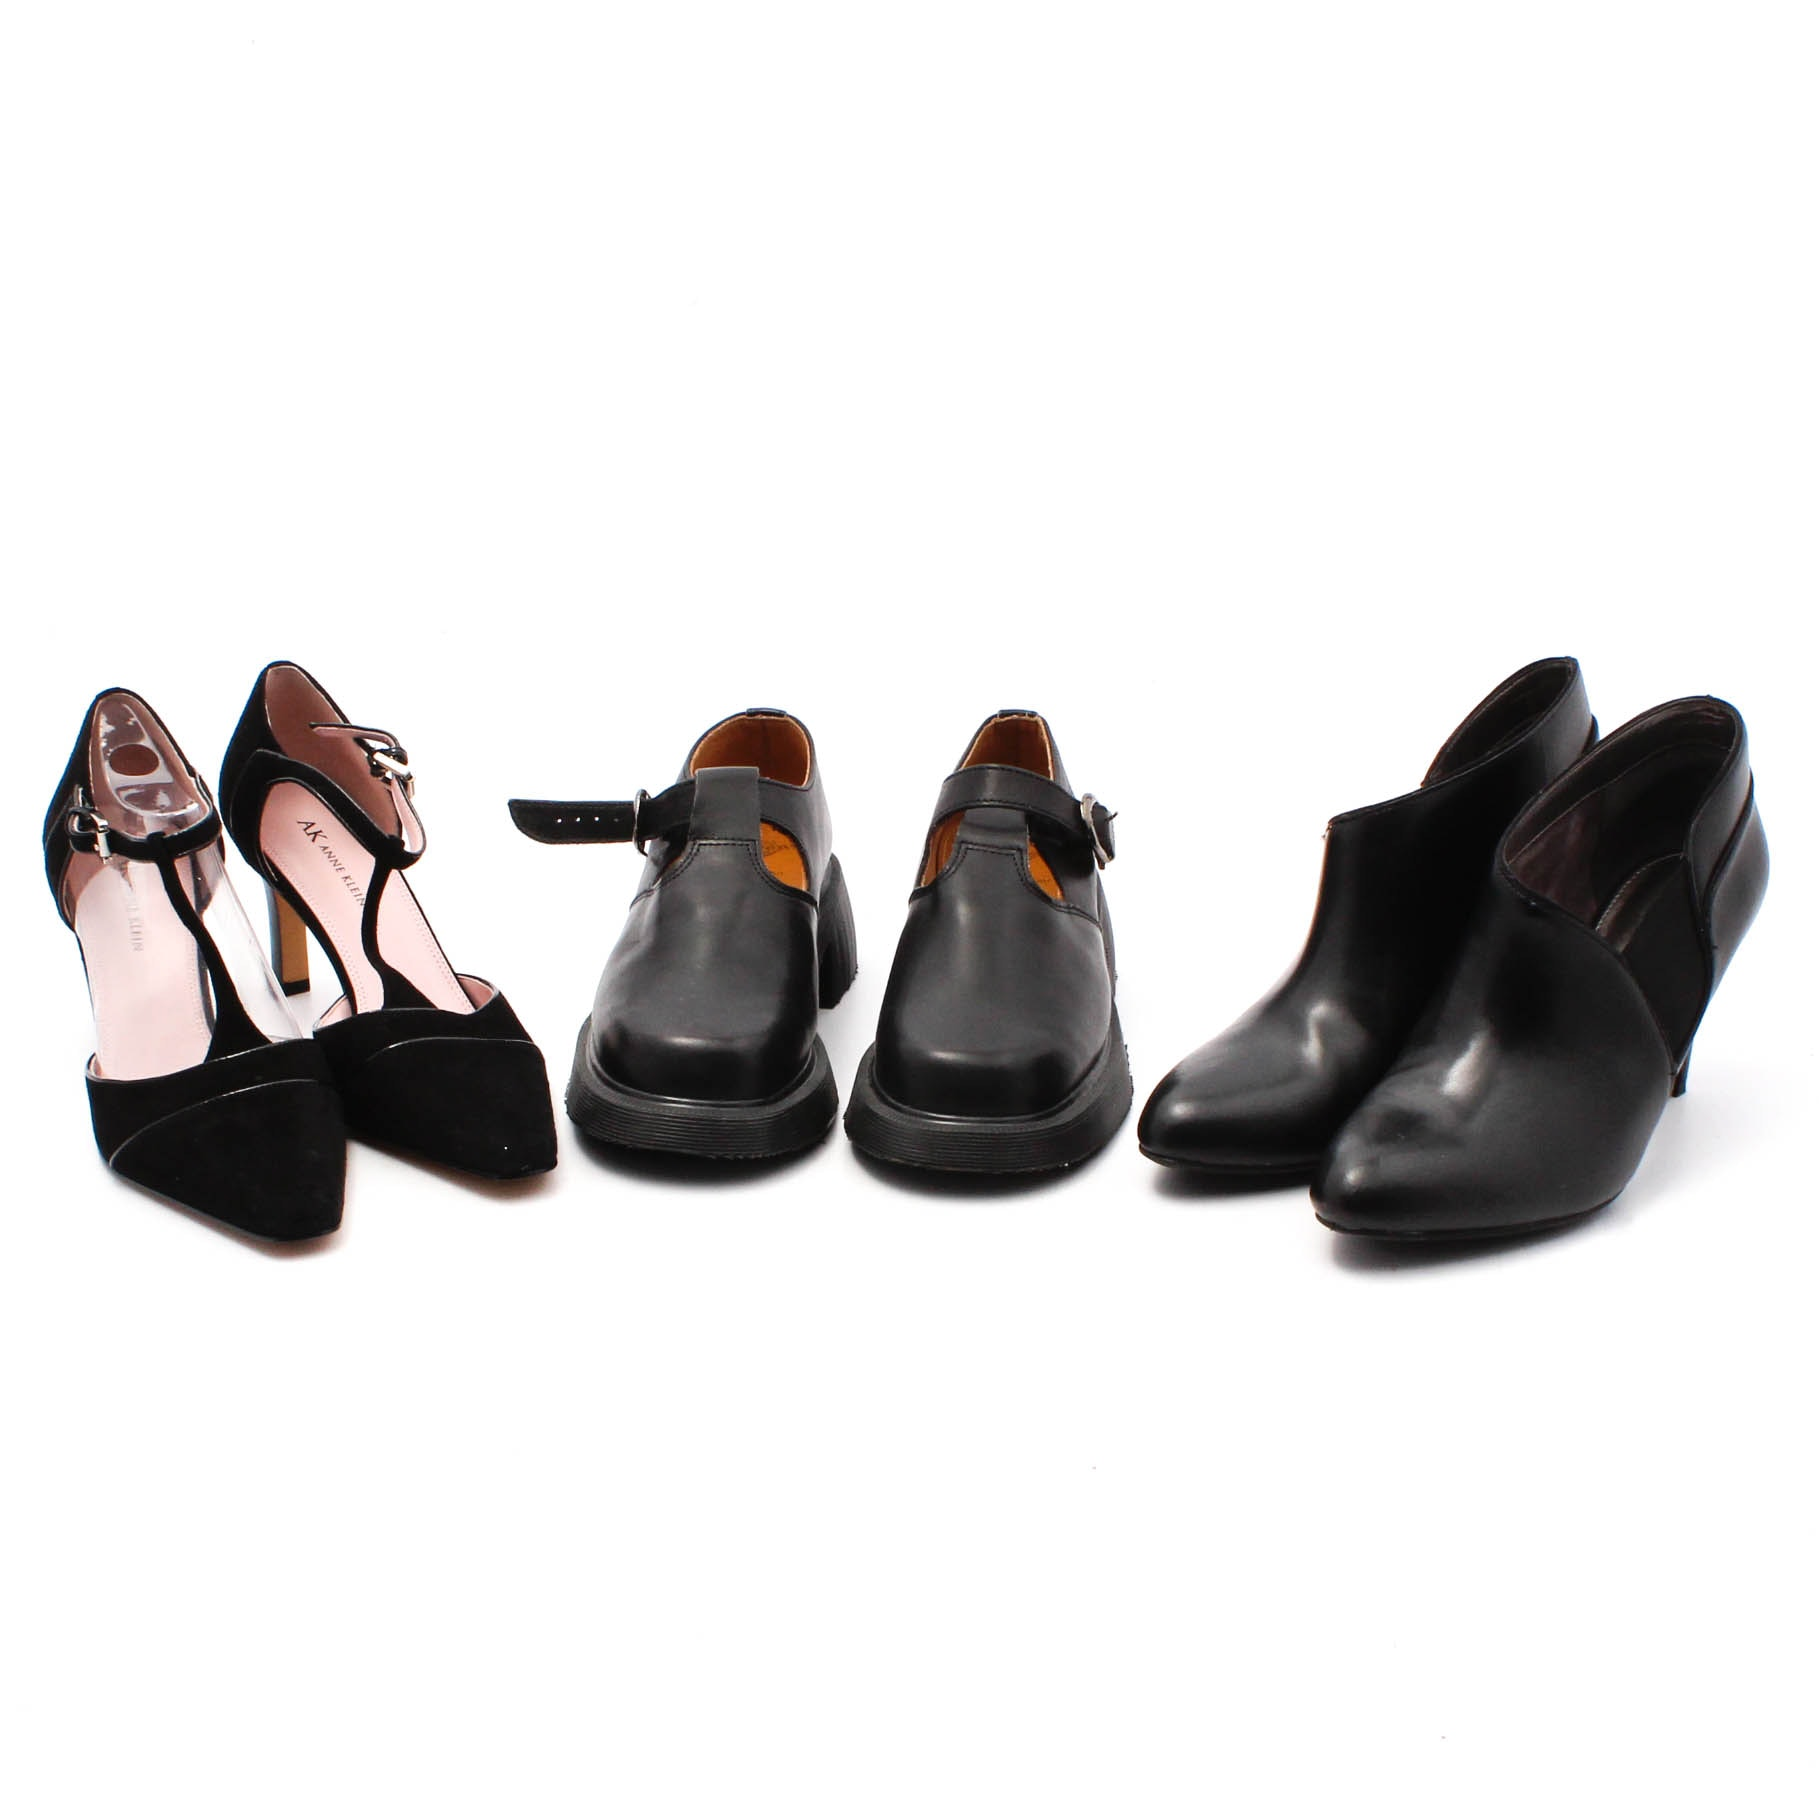 Women's Anne Klein, Doc Martens, and Adrienne Vittadini Shoes